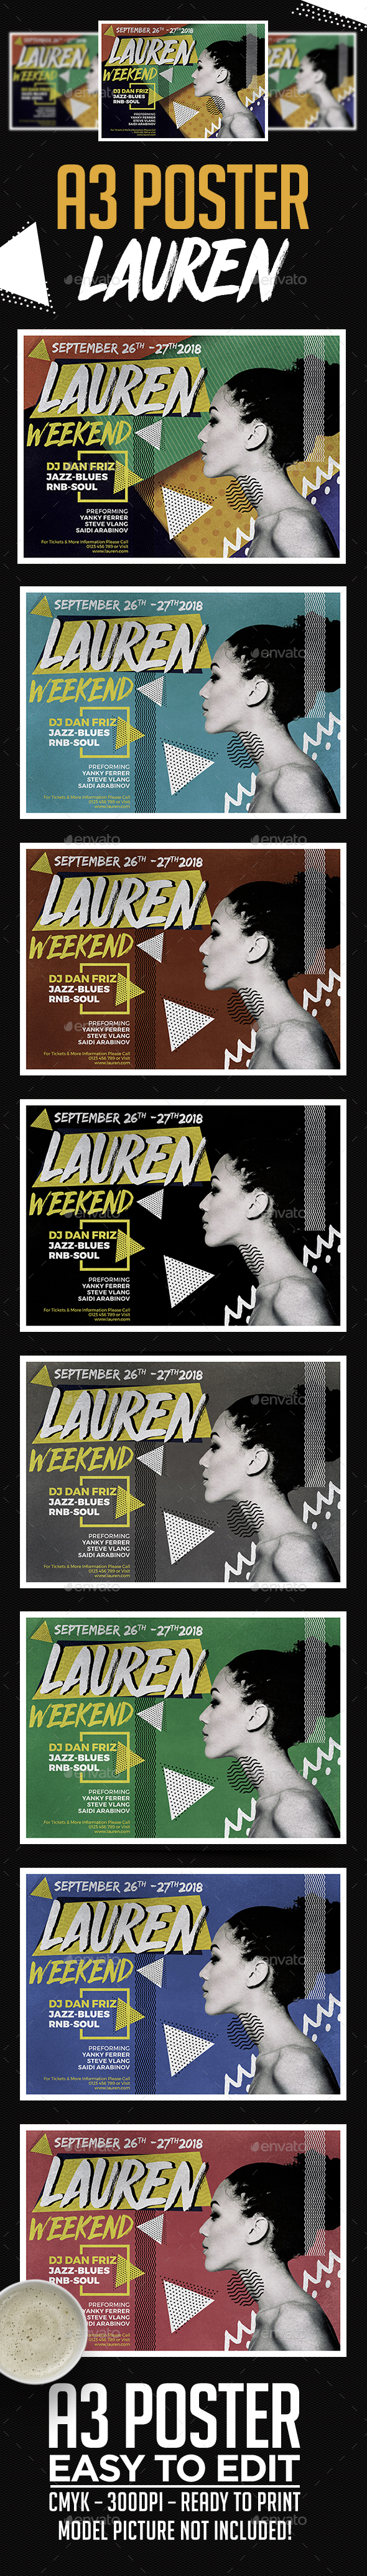 A3 Lauren Poster Art Template - Clubs & Parties Events